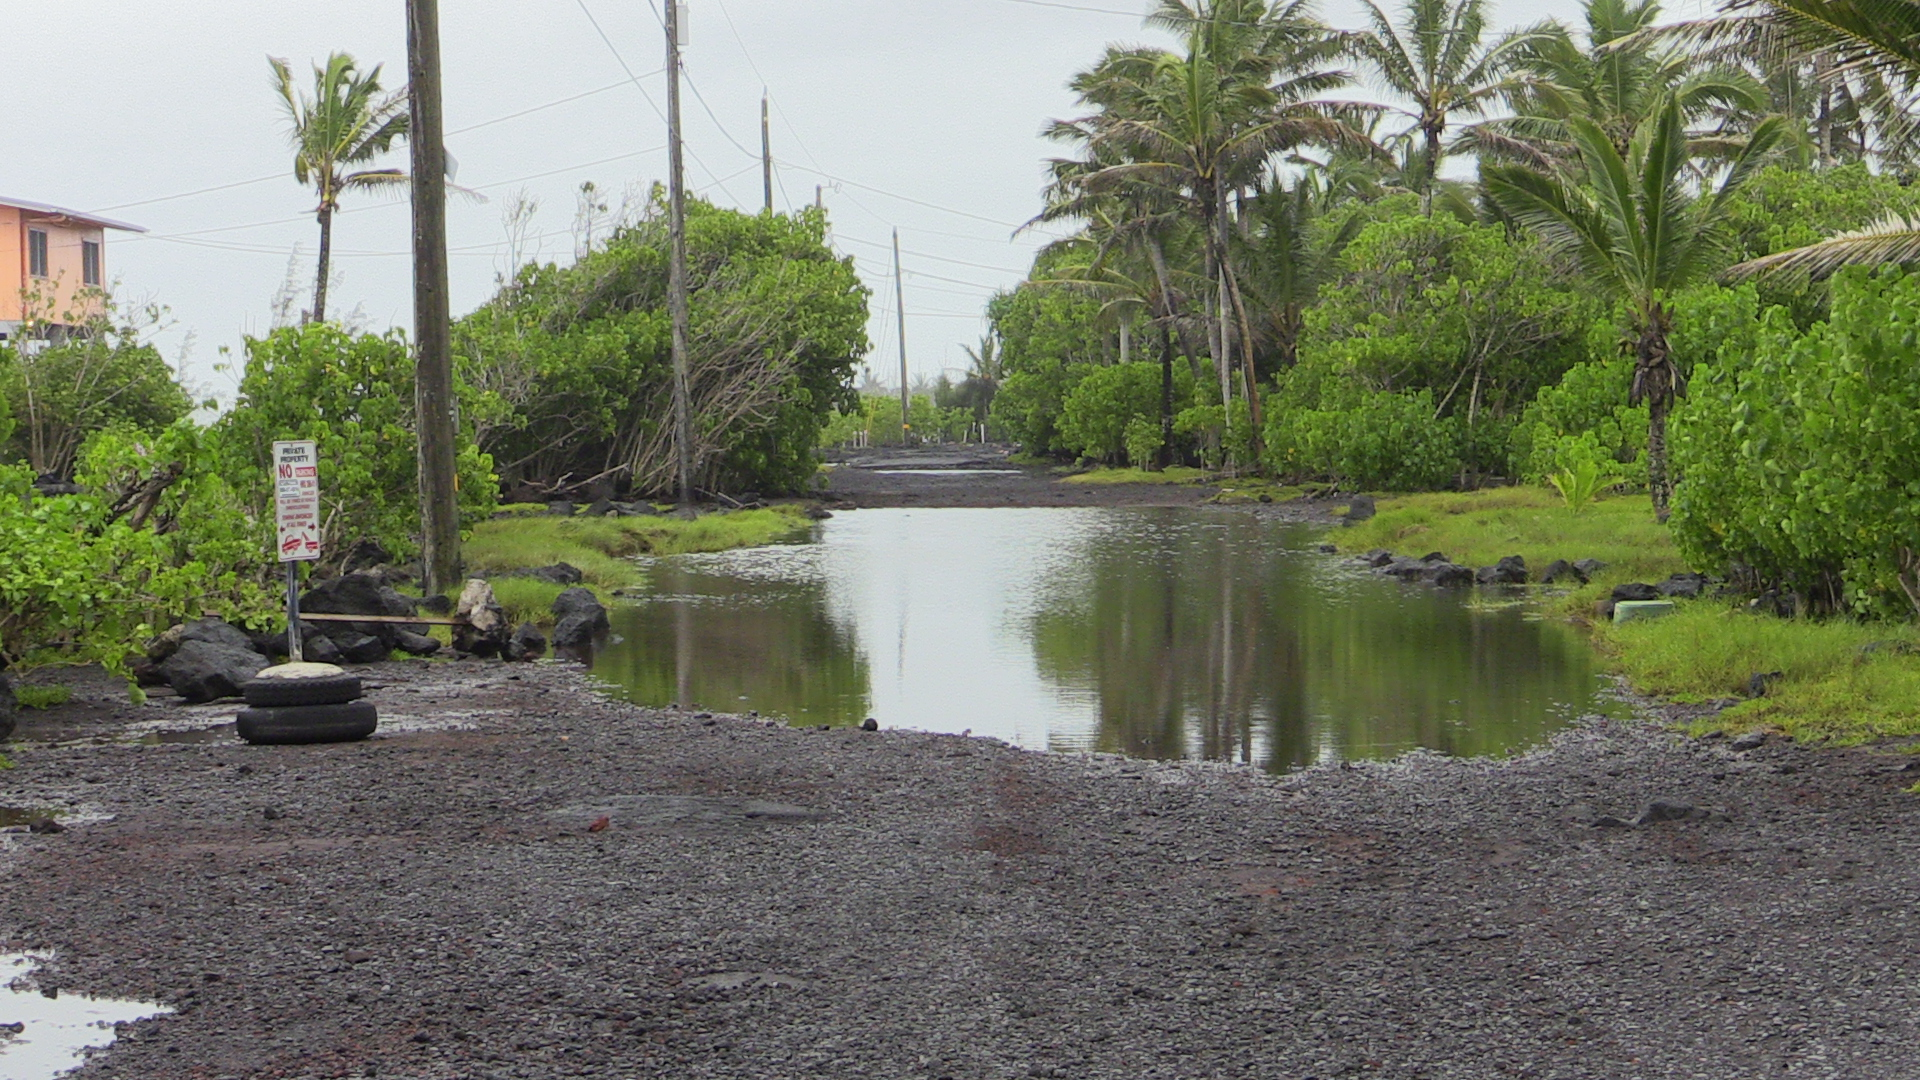 Some minor flooding seen in Kapoho this morning. Image by Daryl Lee.